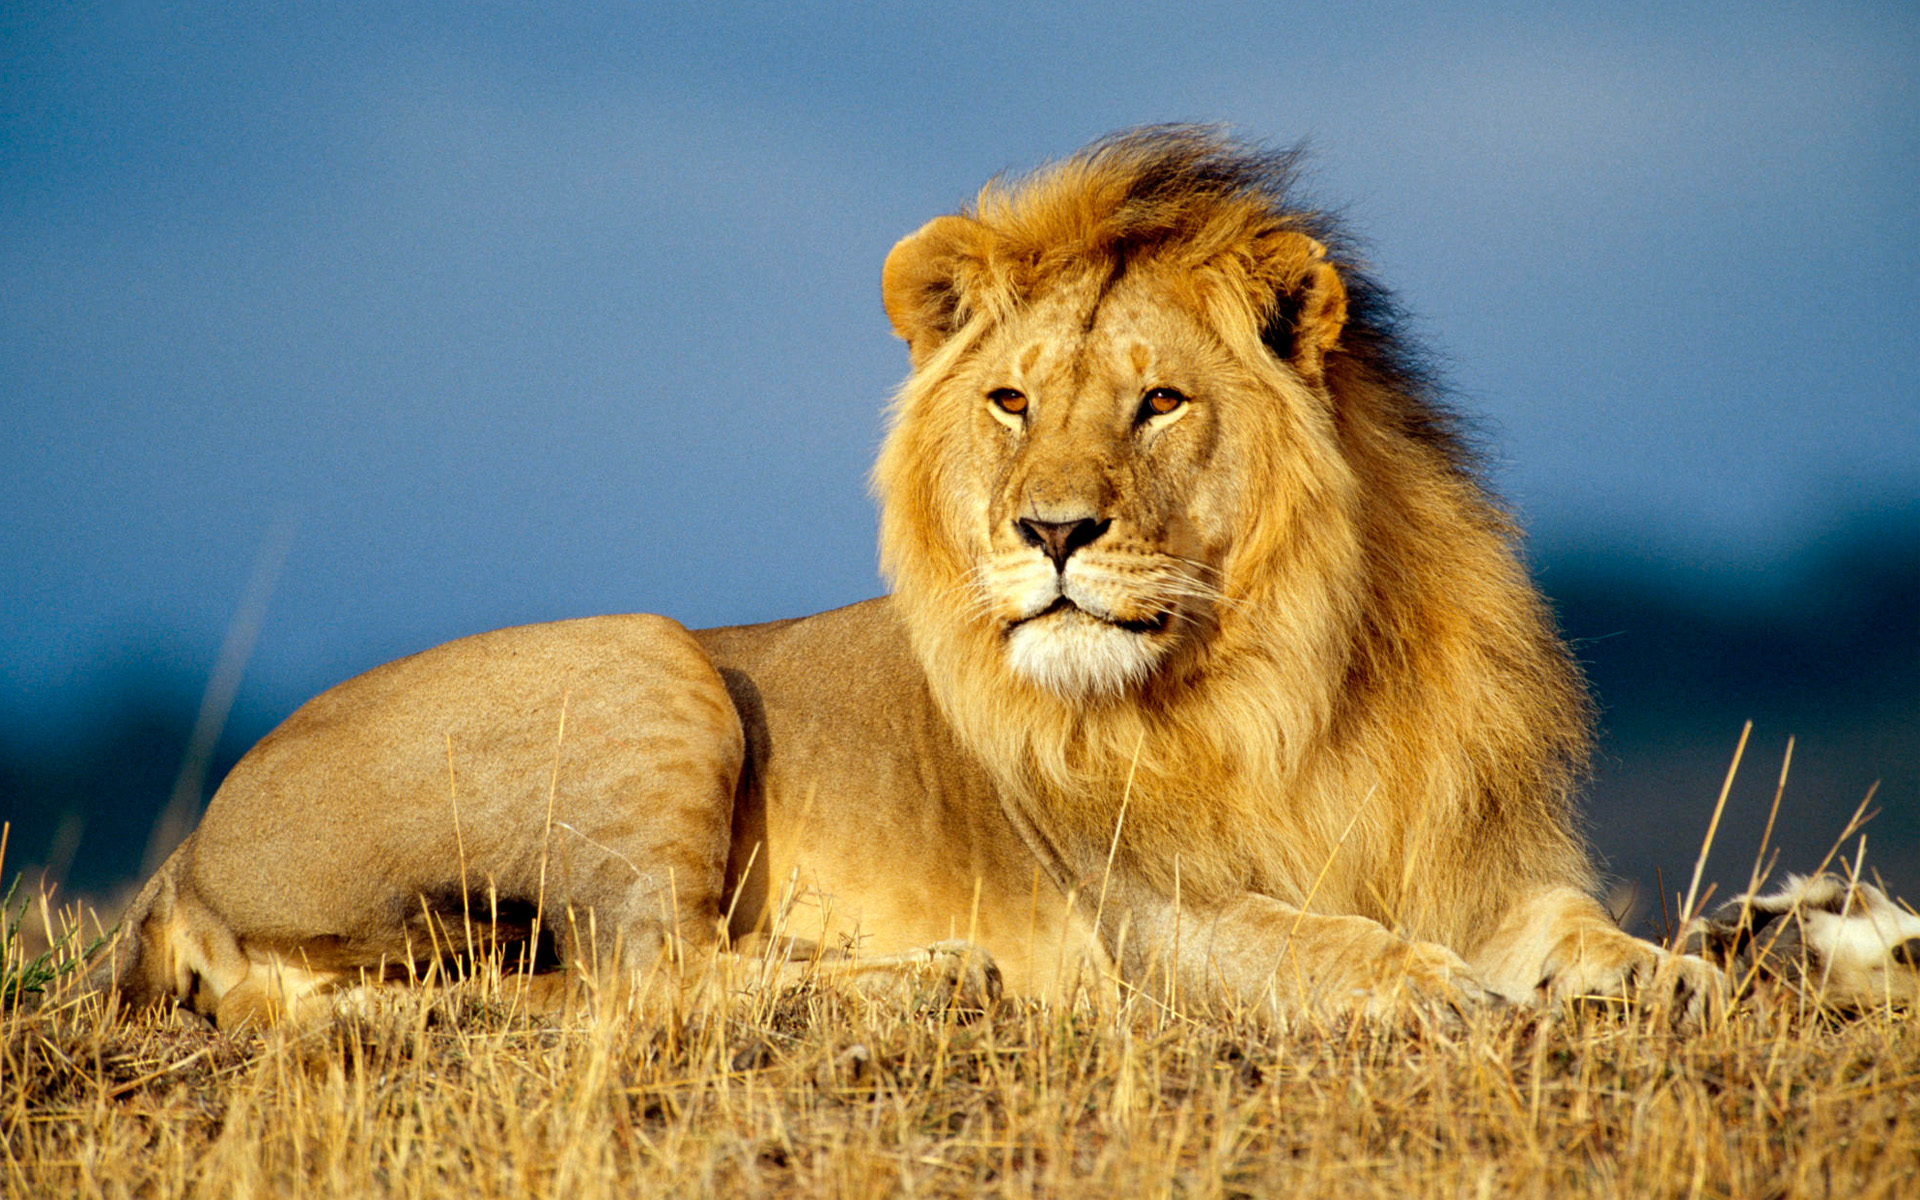 Big Lion Lying in the Grass 128.01 Kb